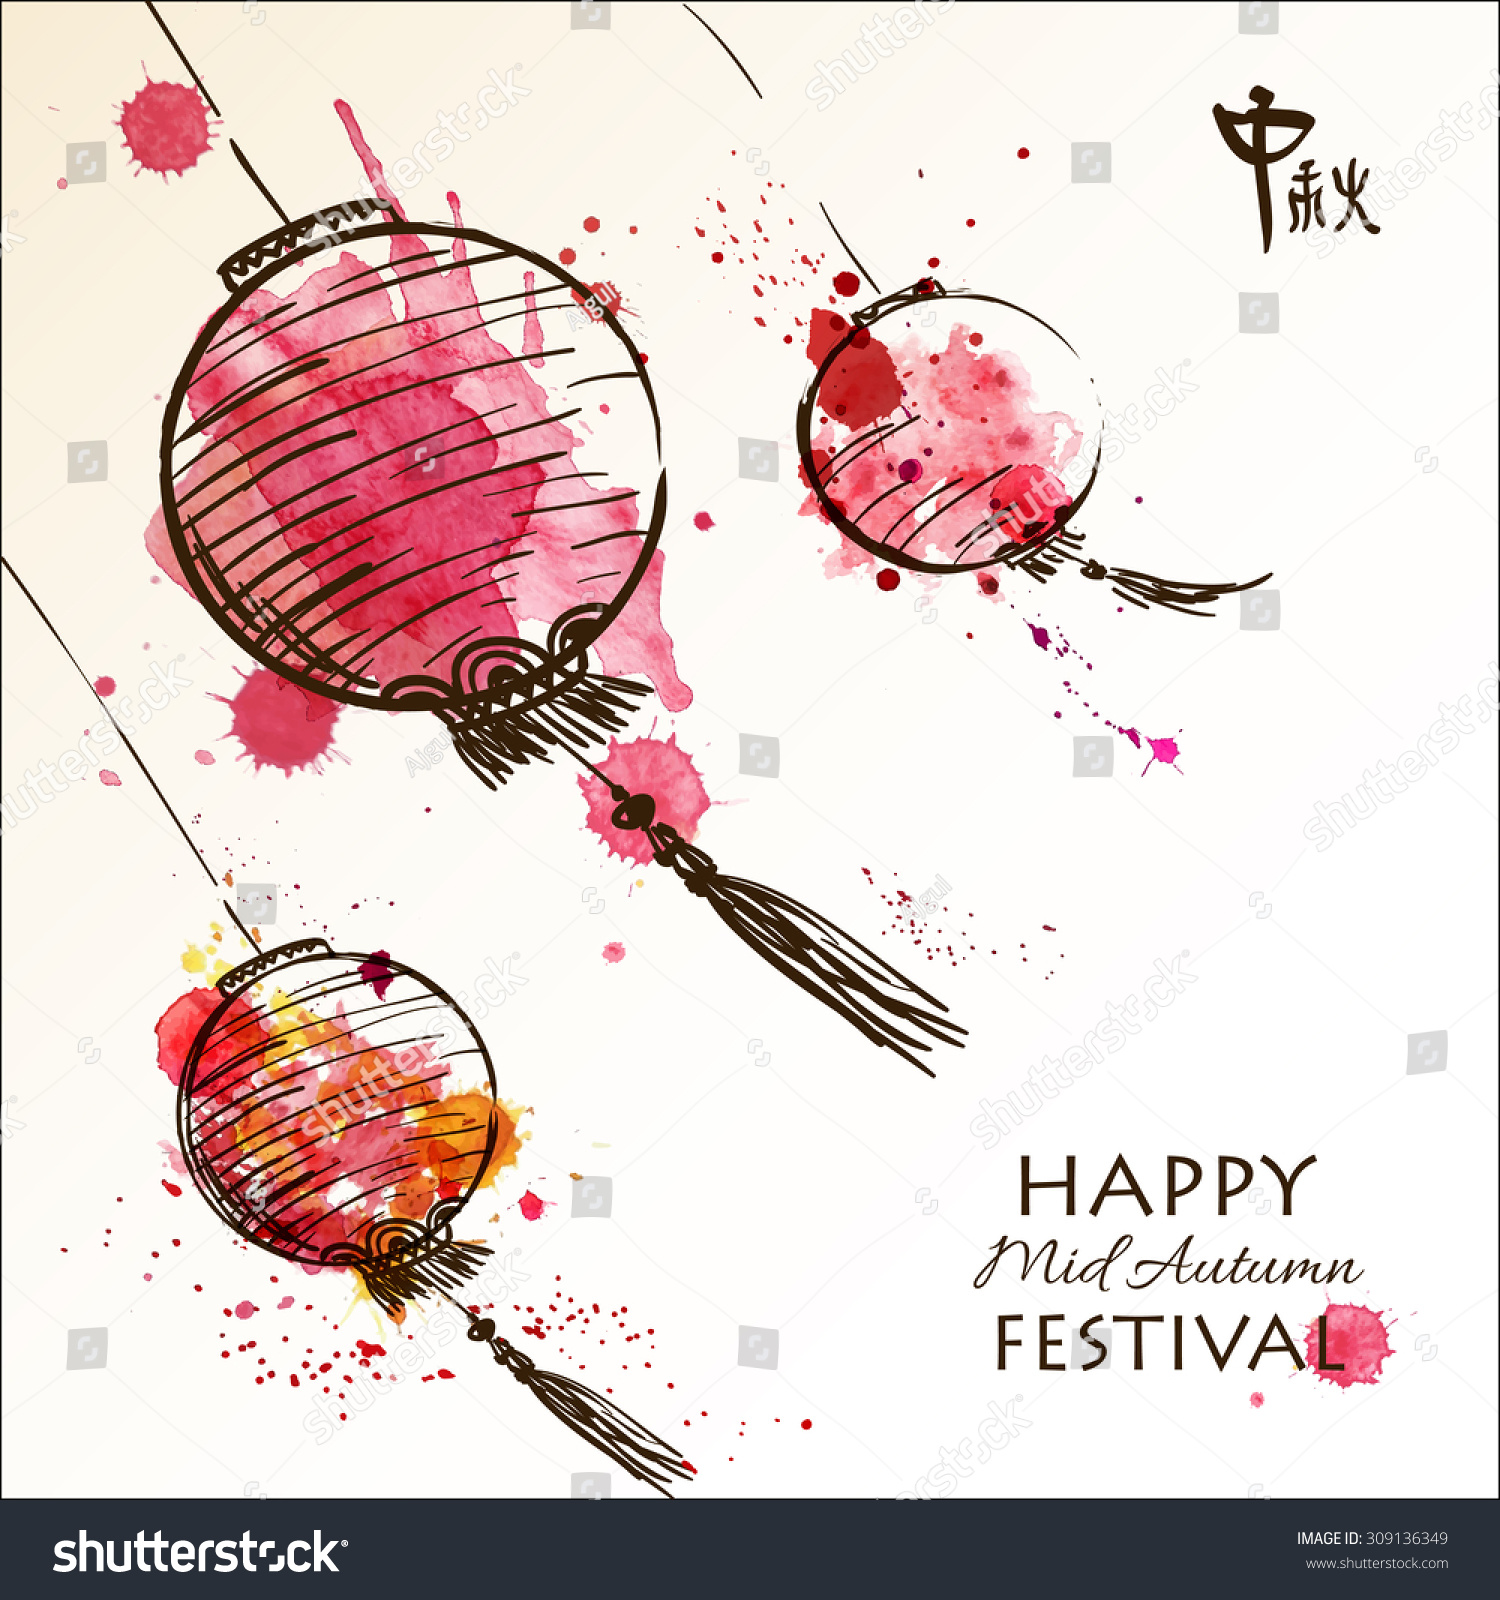 the mid autumn moon festival theology religion essay Free essays on moon cake festival   mid-autumn festival is called tet trung thu in vietnam it is organized in the middle of the autumn which is the eighth lunar .